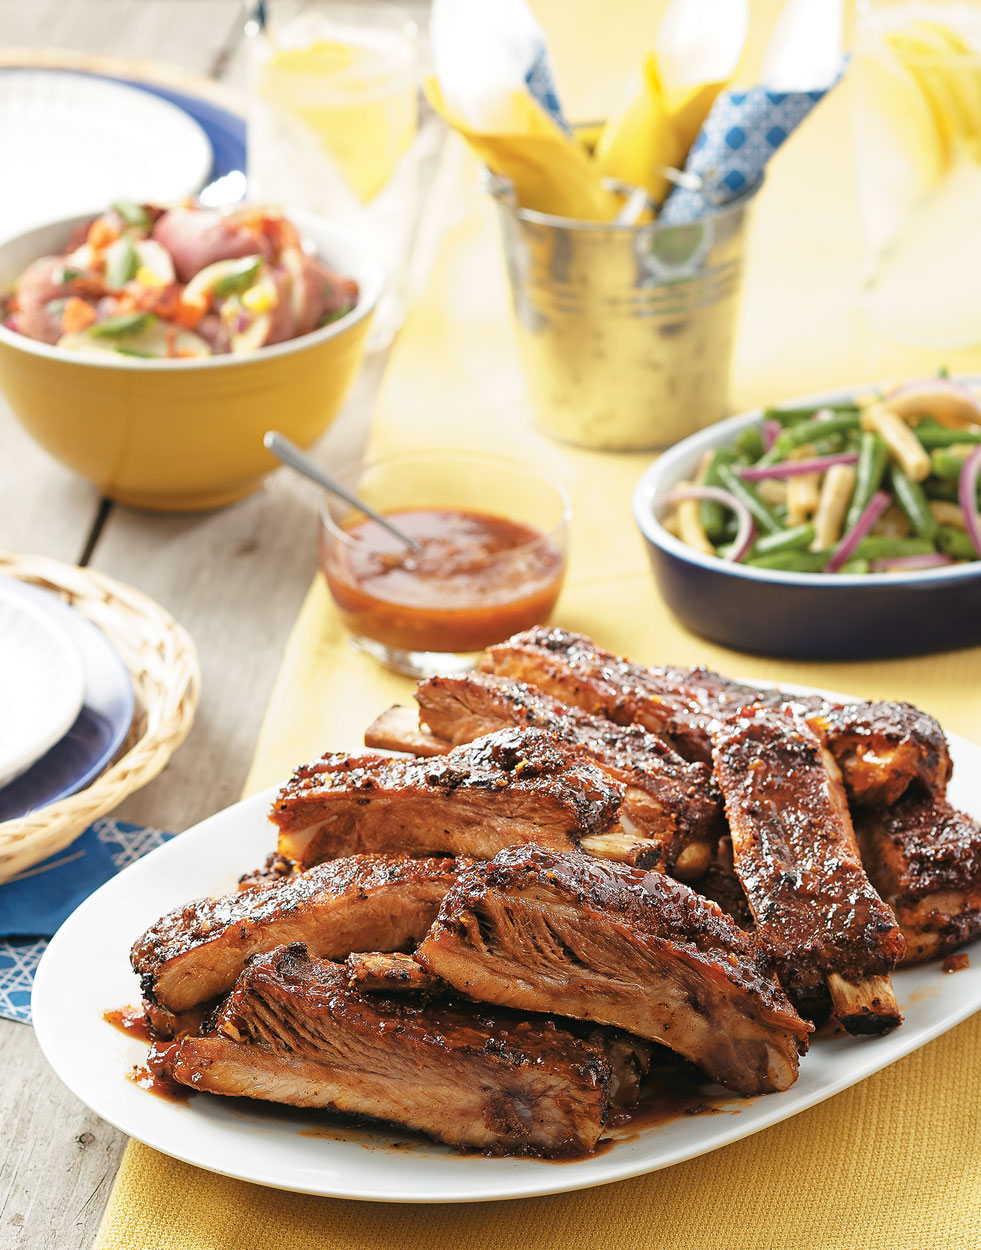 Spicy Dry Rubbed & Grilled Spareribs with bock barbecue sauce